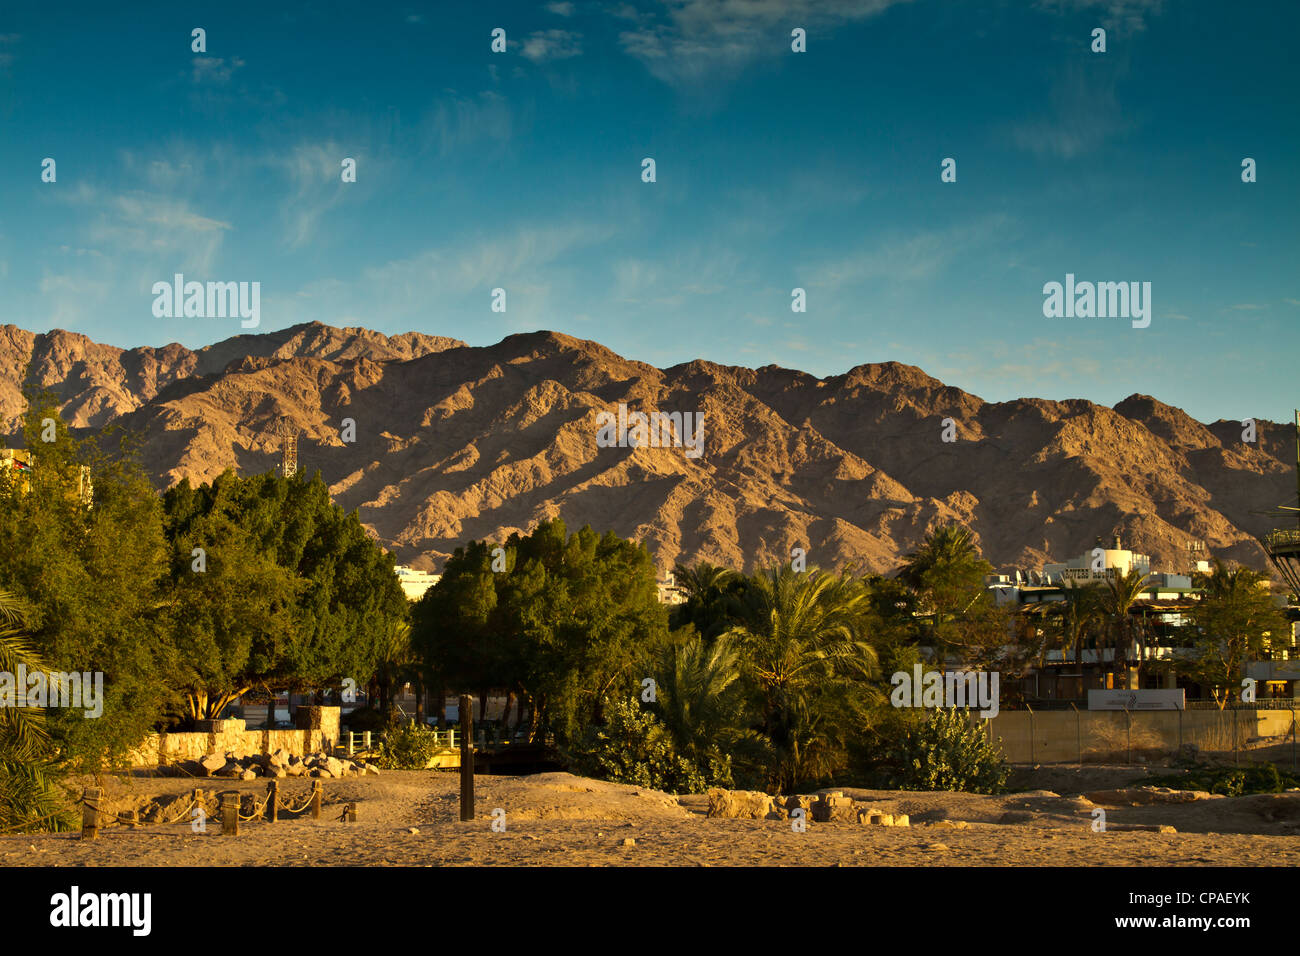 Mountains of the Red Sea, Aqaba, Jordan - Stock Image